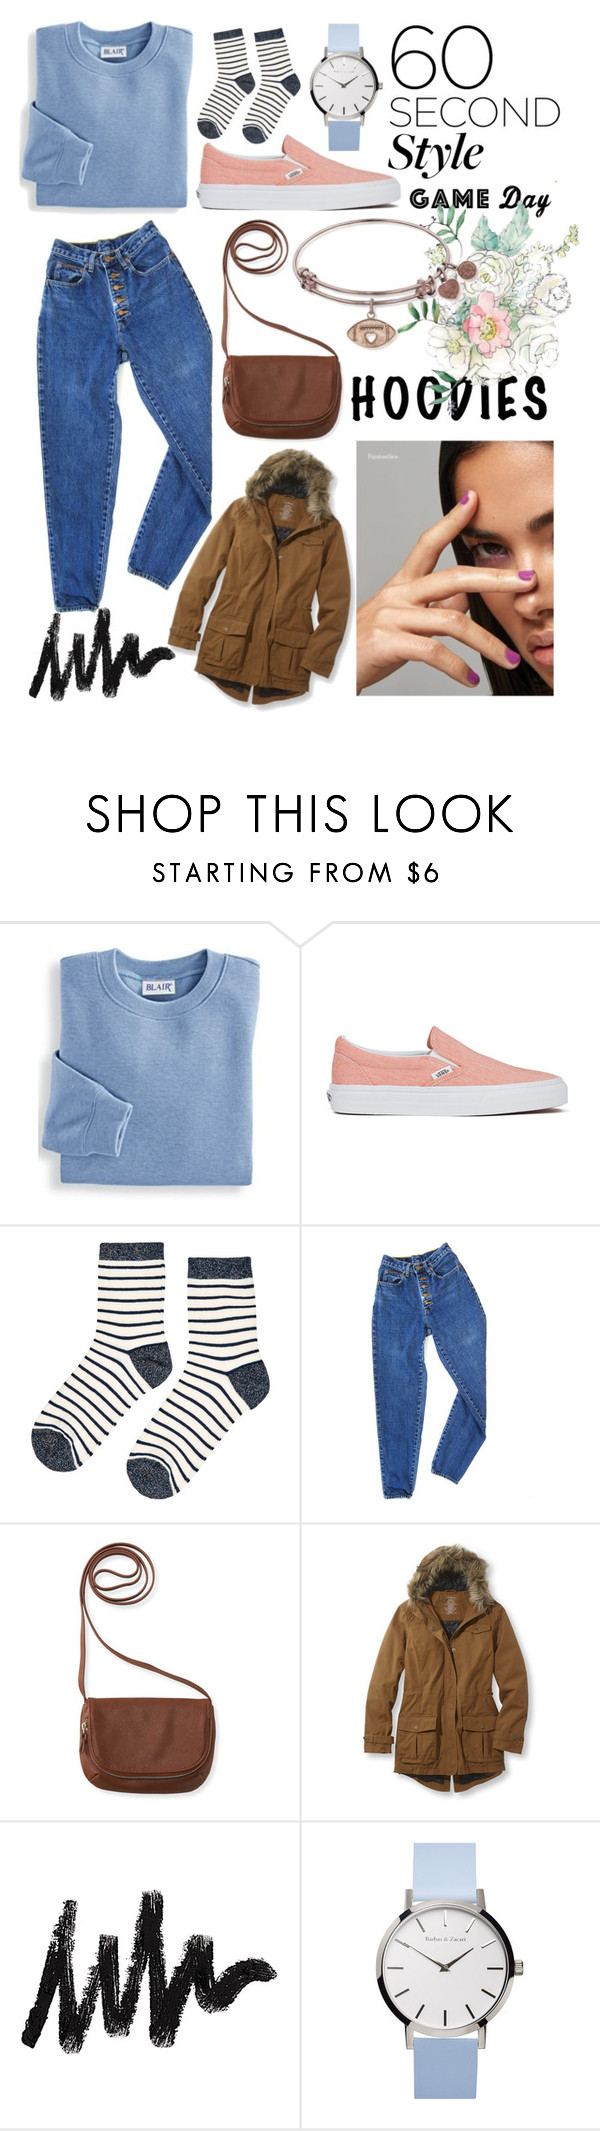 """""""Game day"""" by kaliforniakatie on Polyvore featuring Blair, Vans, Accessorize, PèPè and Aéropostale"""